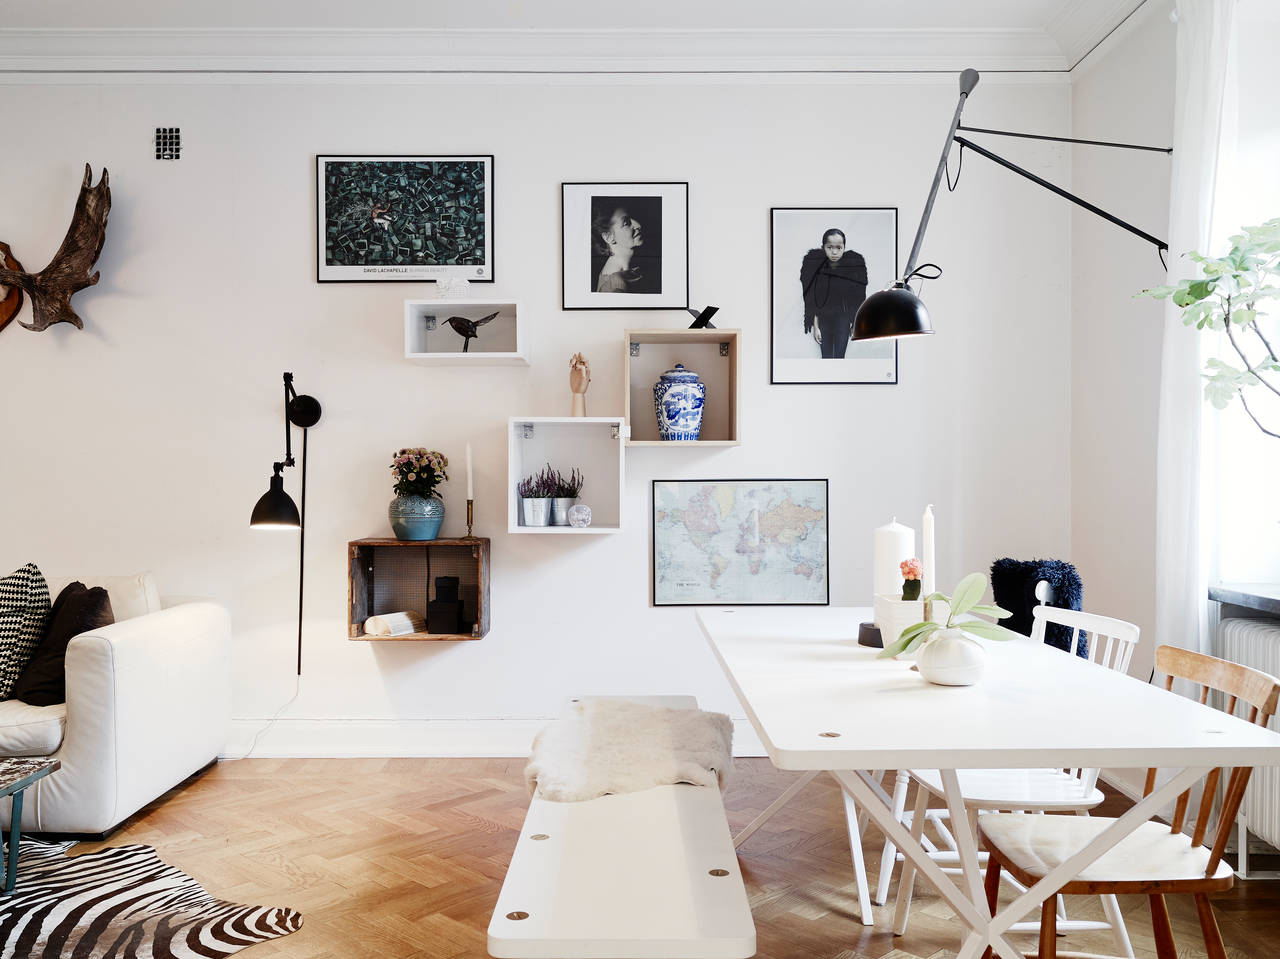 Banc De Salon Home Tour : Un Original Dans Le Style Scandinave